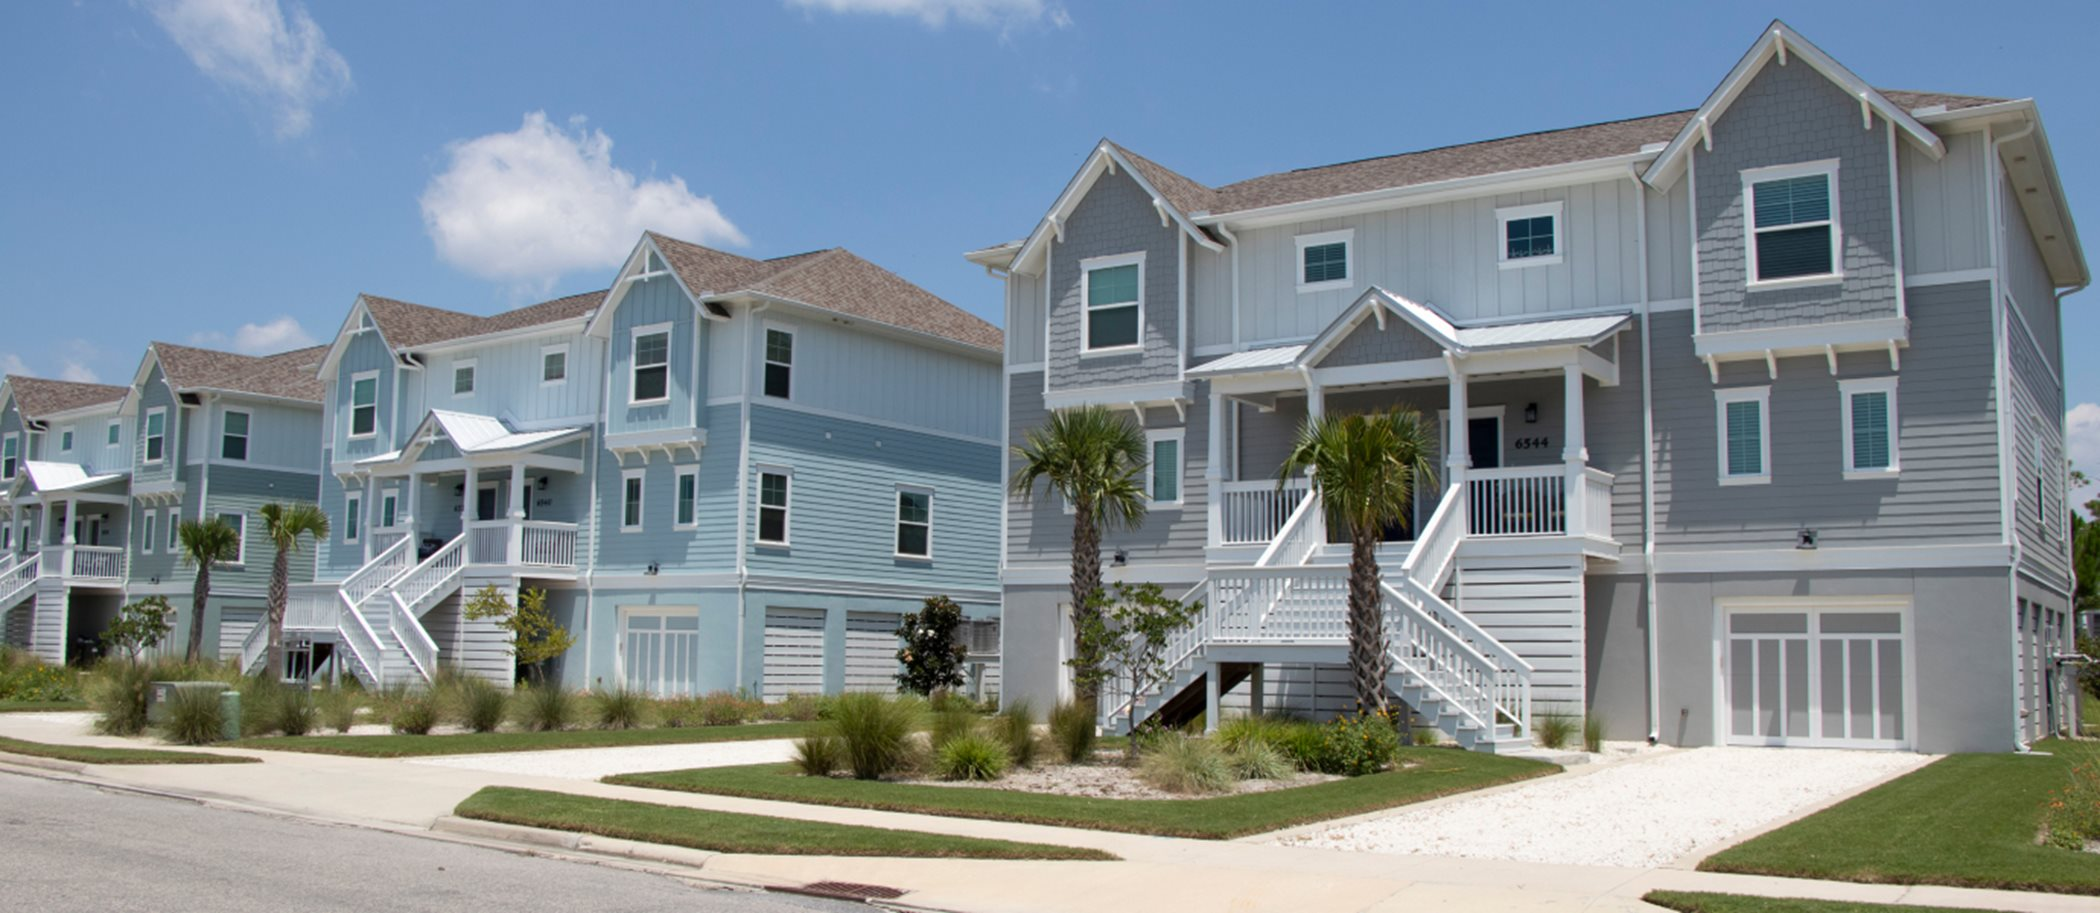 Lost Key Townhomes